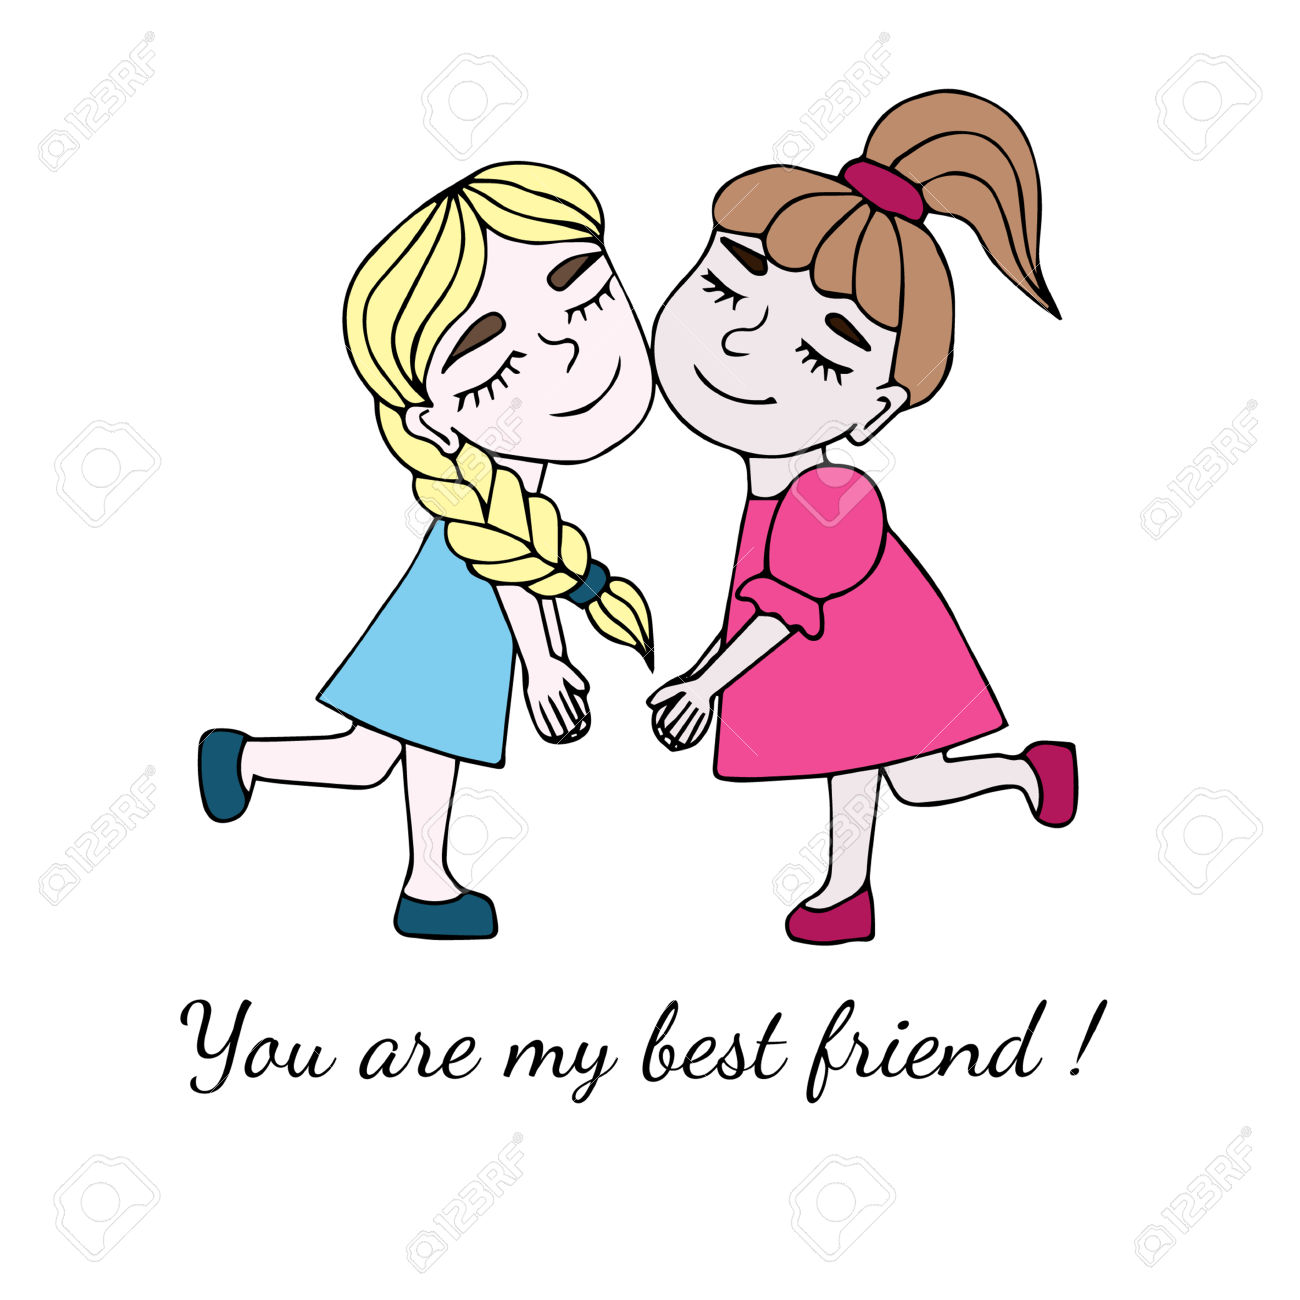 1300x1300 First Rate Best Friend Clipart Brothers Or Friends Running Royalty